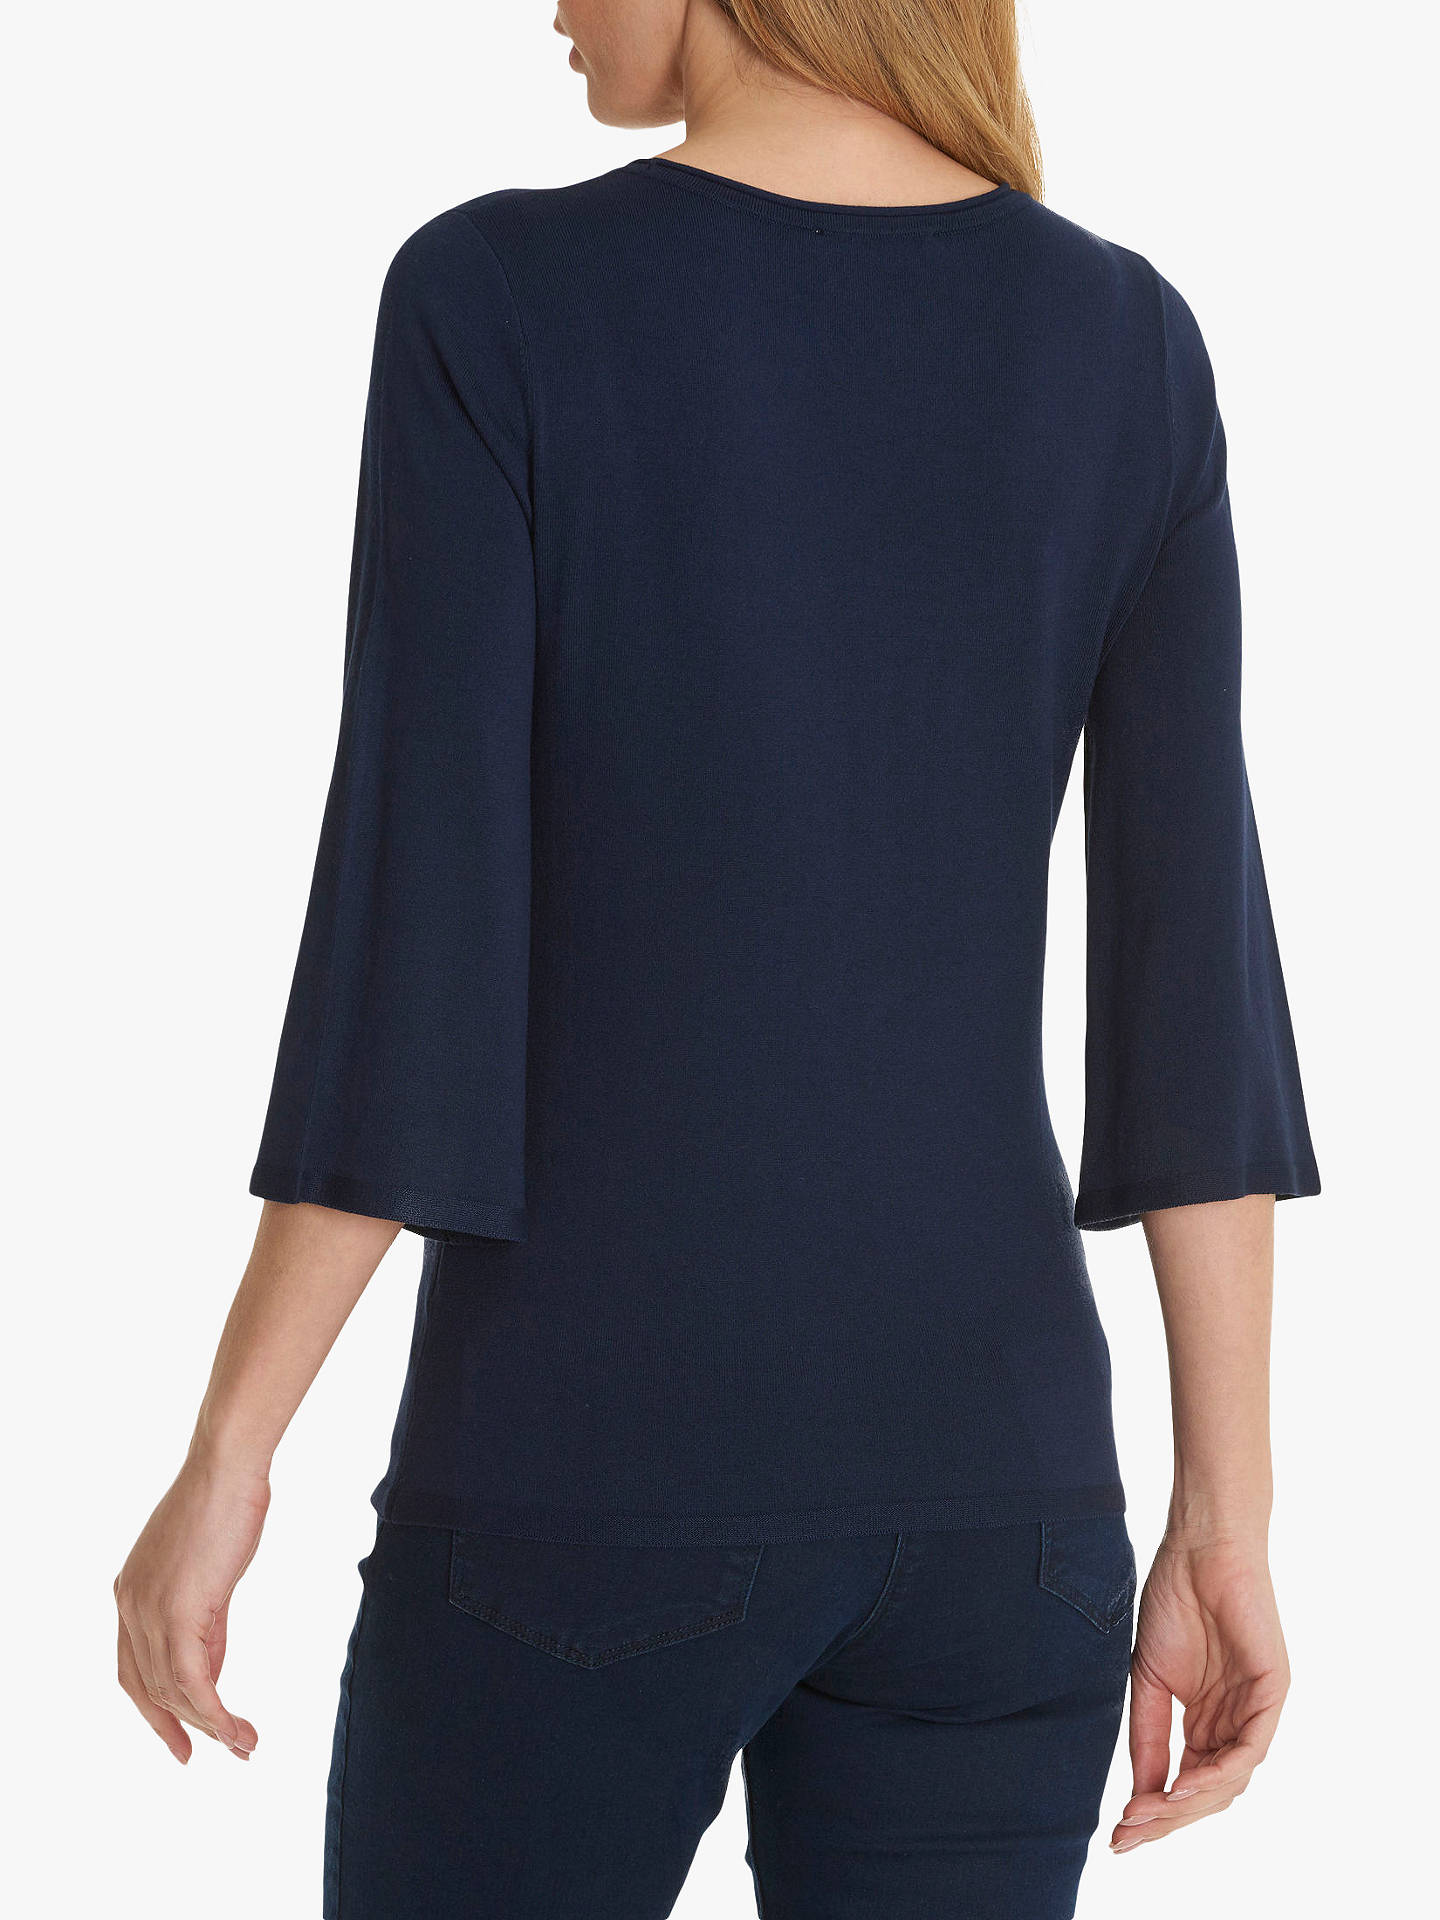 BuyBetty Barclay Fine Knit Embellished Jumper, Peacoat Blue, 10 Online at johnlewis.com